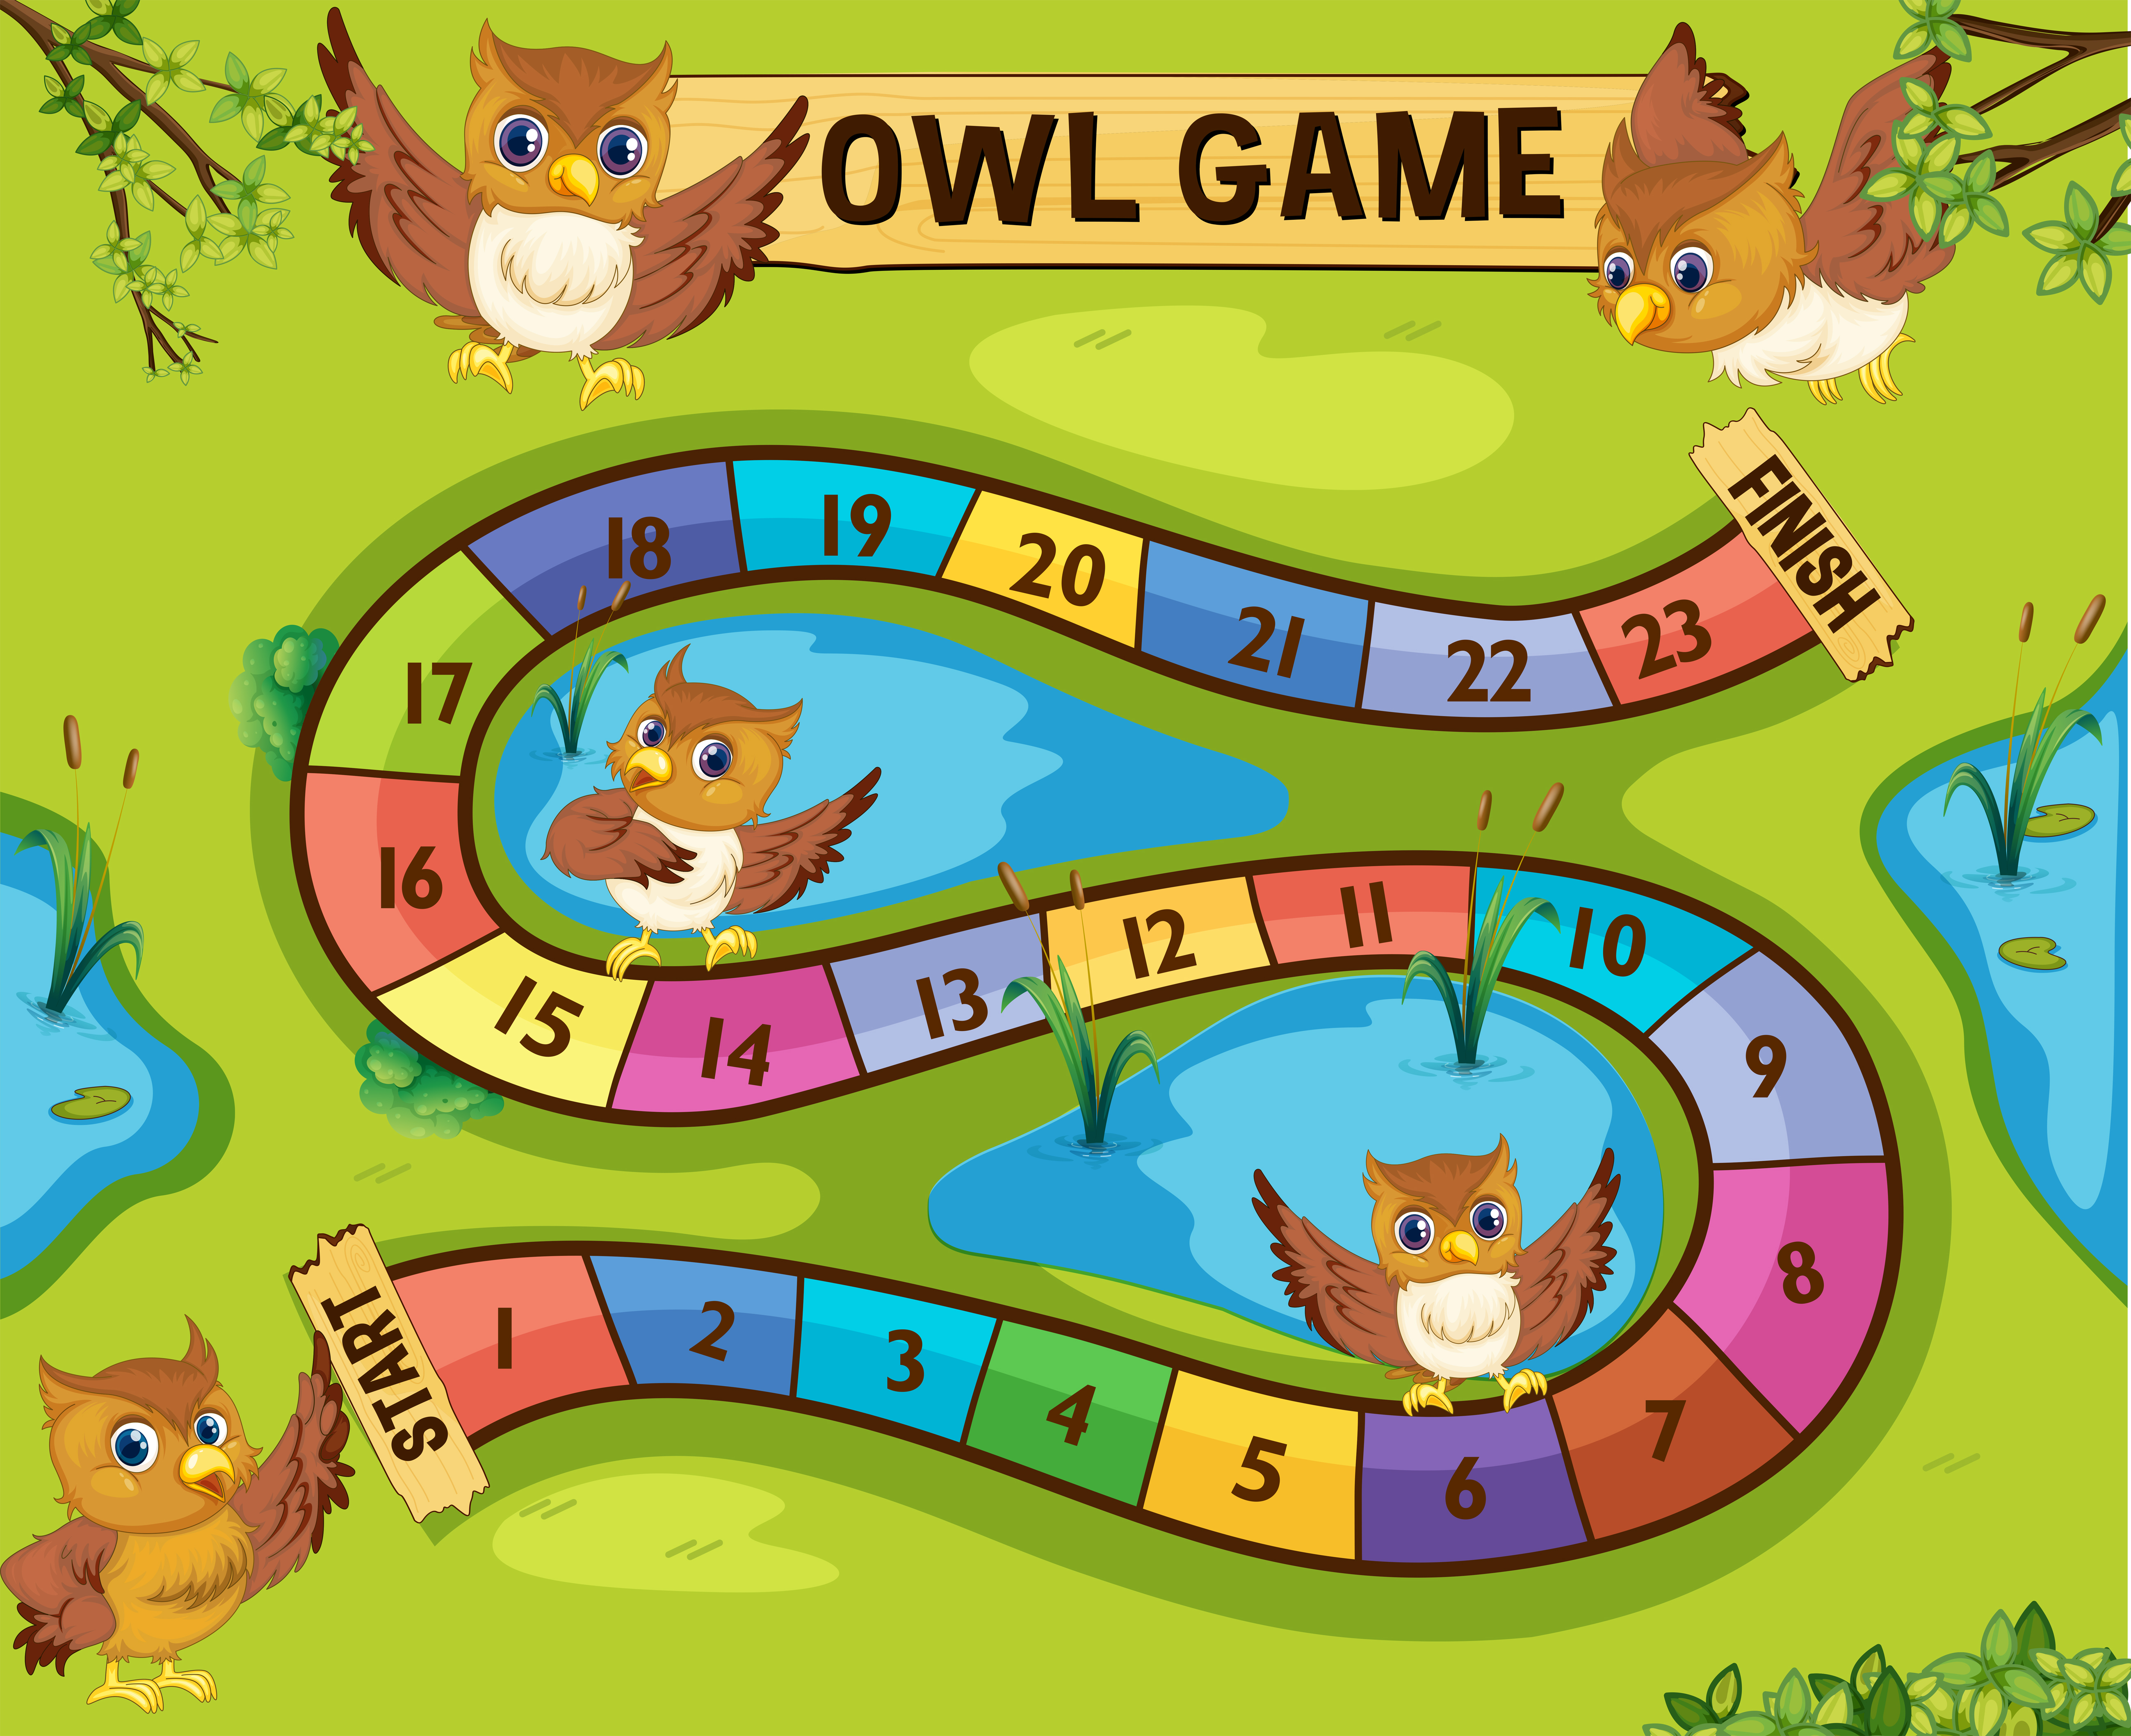 Boardgame template with owls in background - Download Free ...